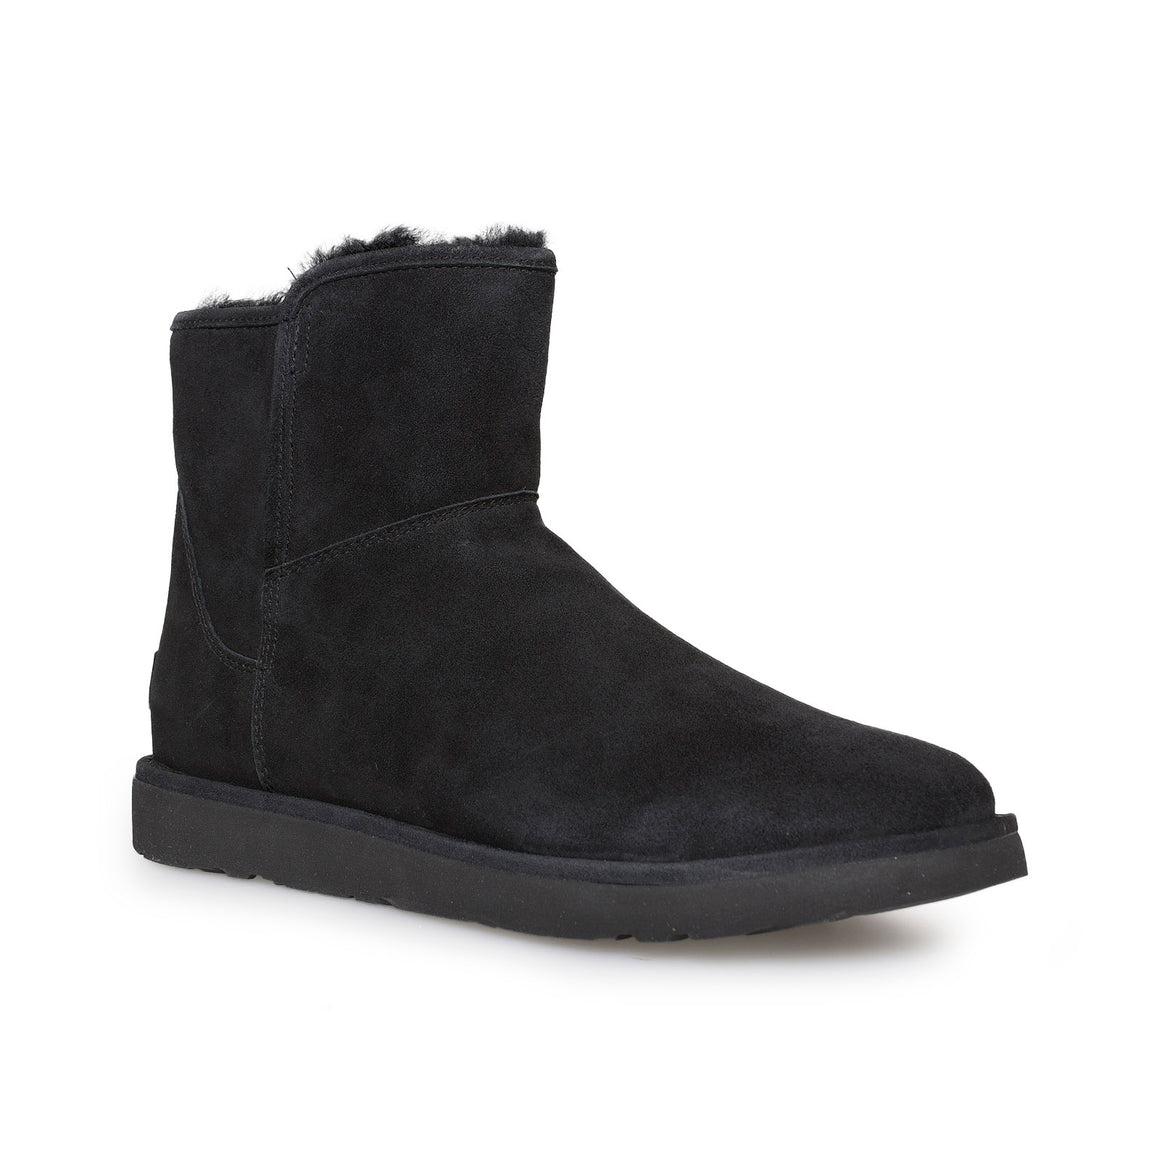 UGG Abree Mini Nero Boots - Women's